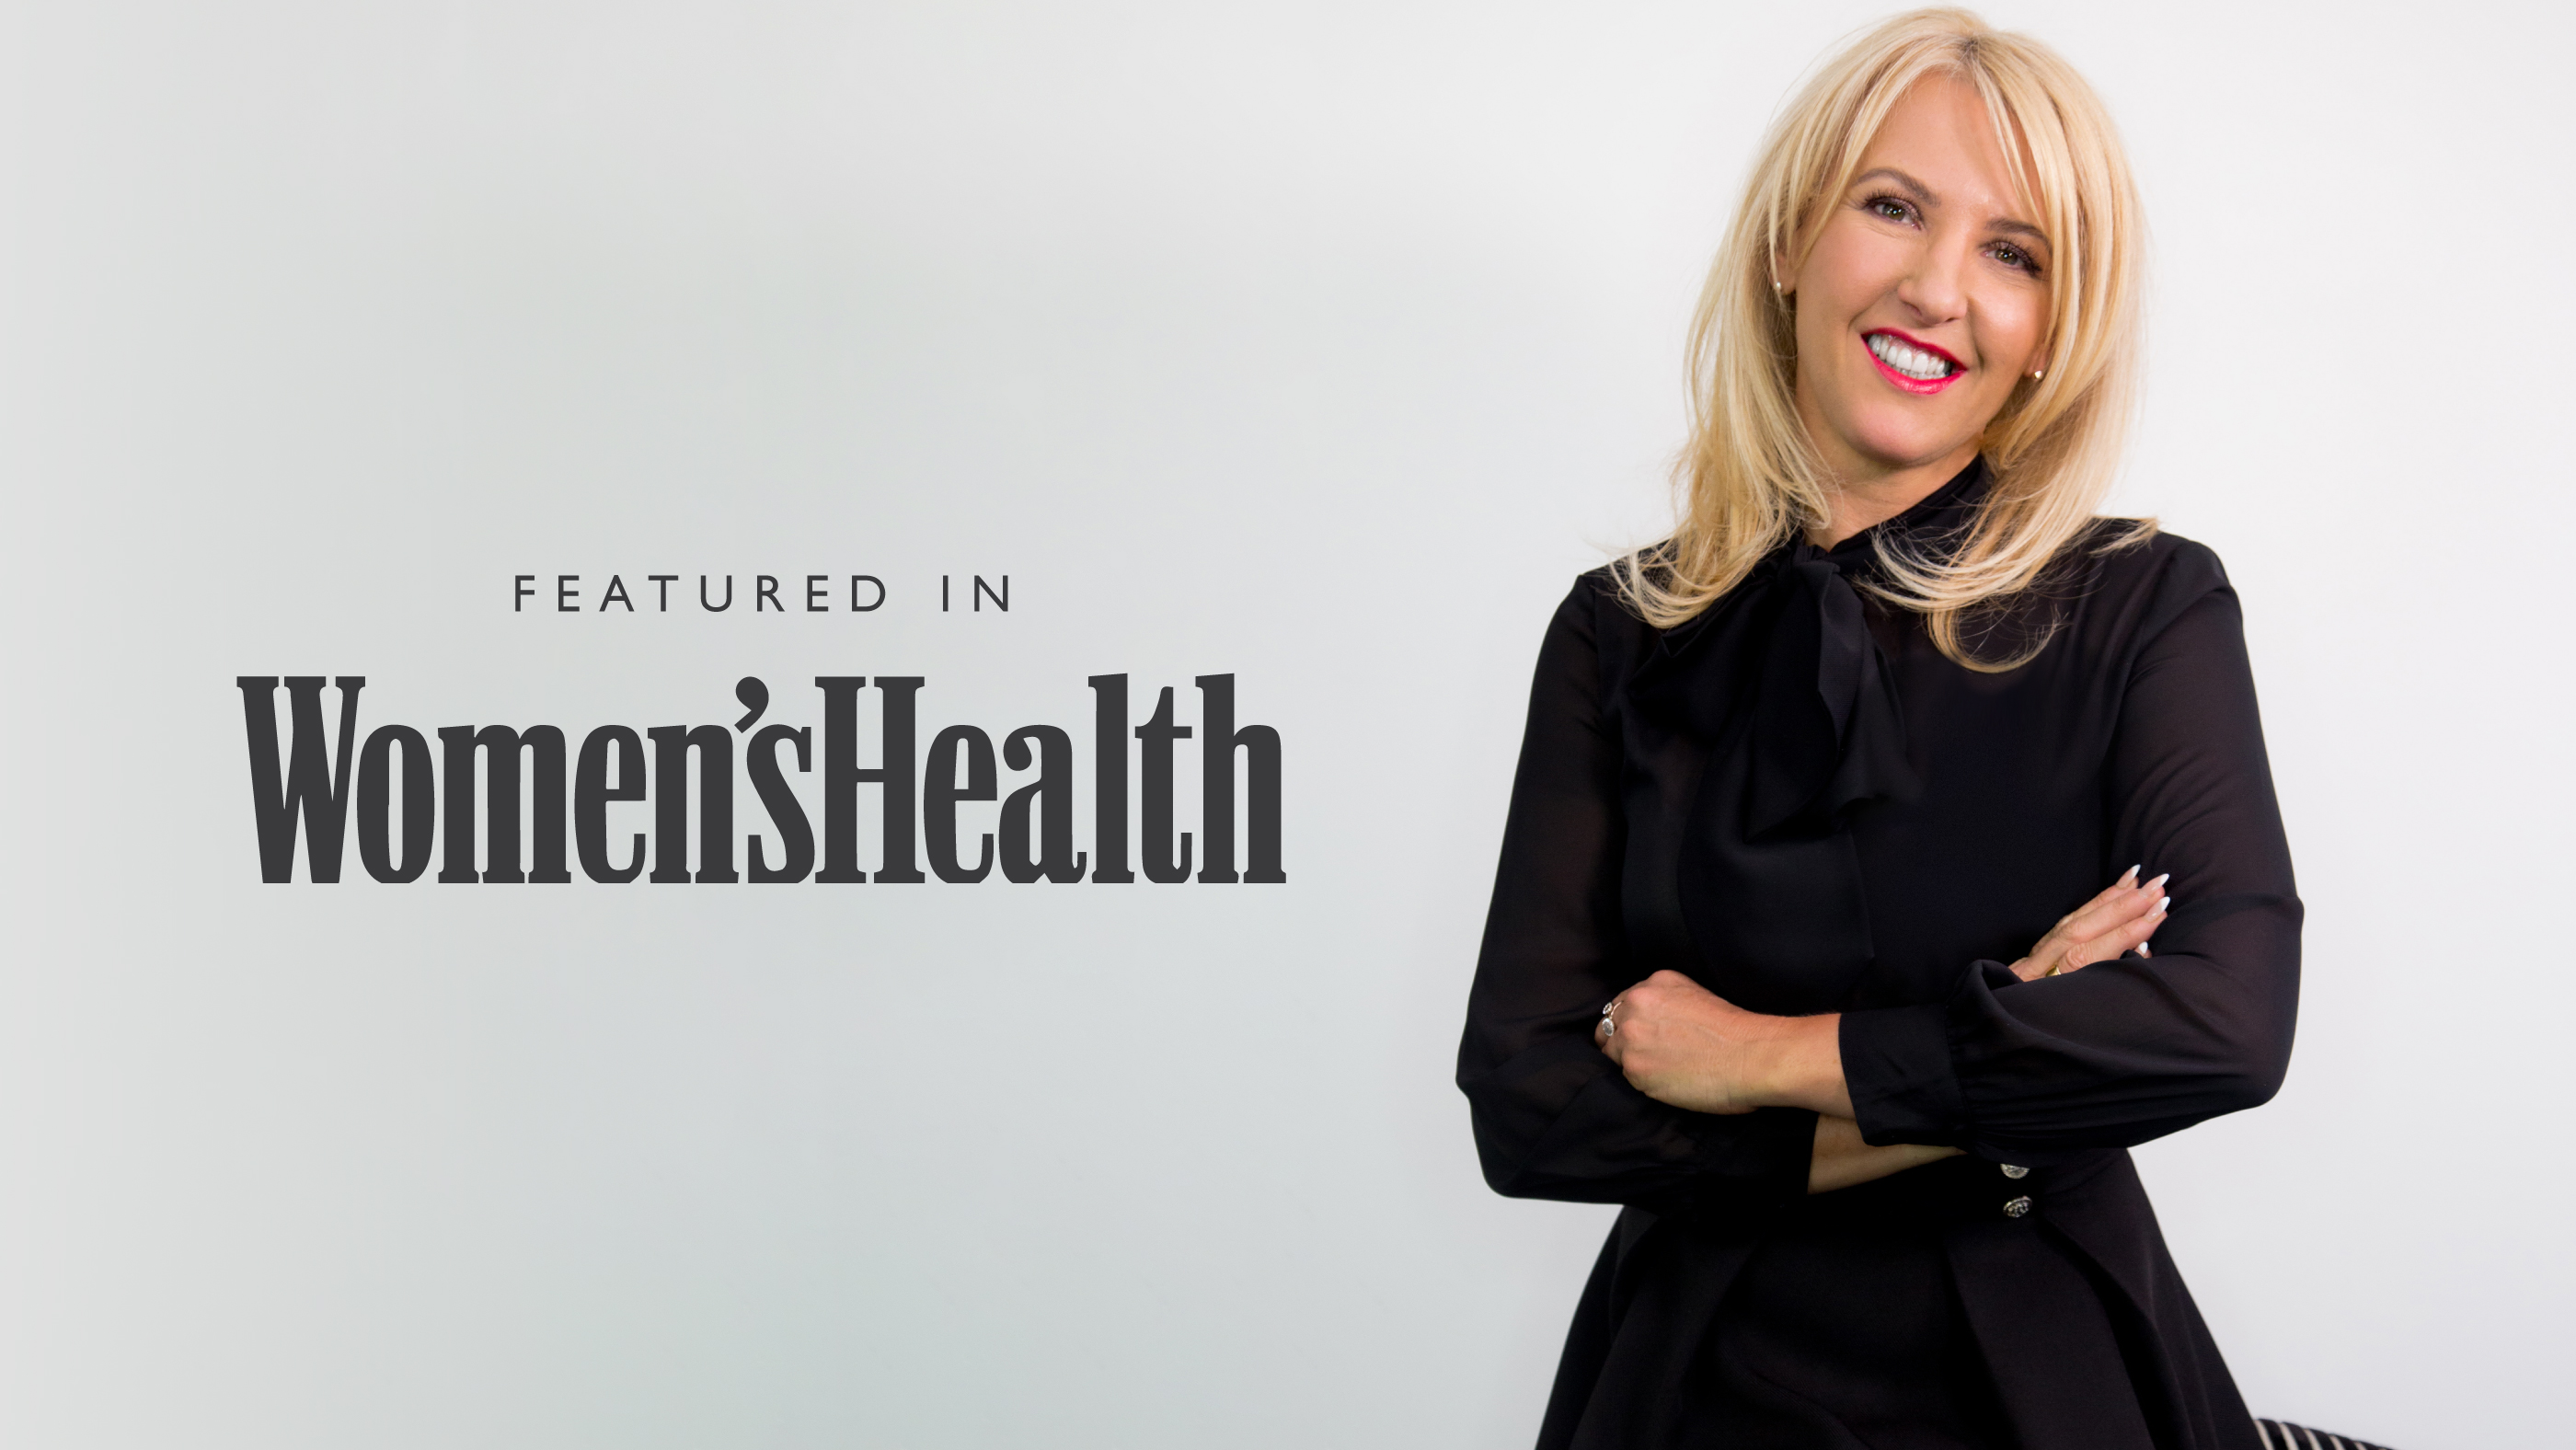 Karen Betts appears in Women's Health